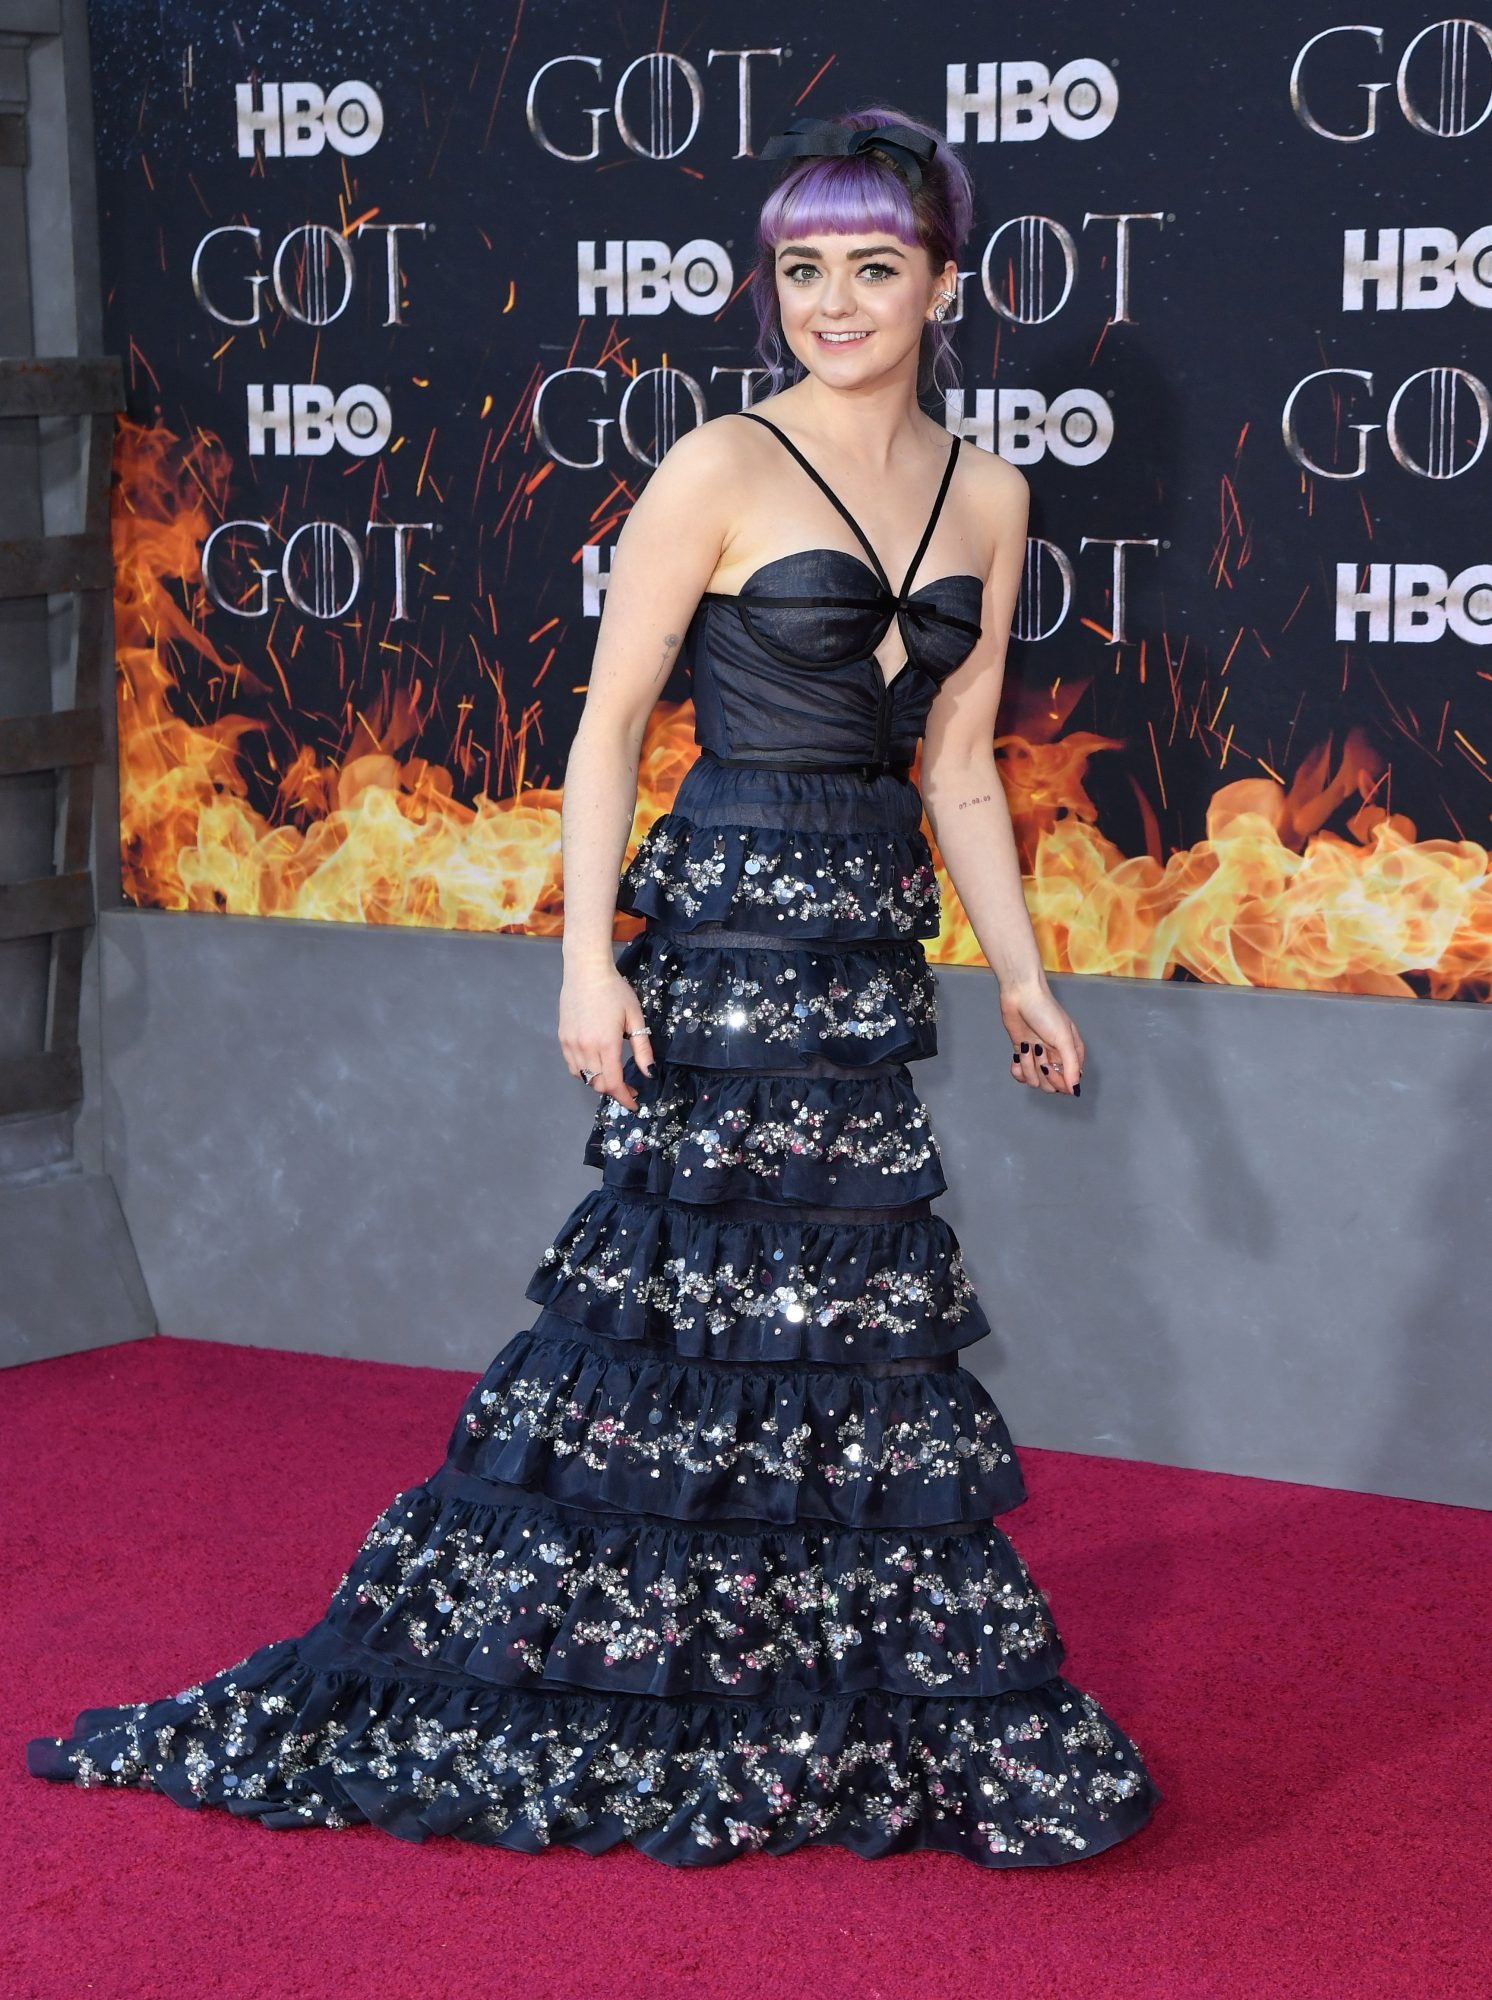 """British actress Maisie Williams arrives for the """"Game of Thrones"""" eighth and final season premiere at Radio City Music Hall on April 3, 2019 in New York city. (Photo by Angela Weiss / AFP)        (Photo credit should read ANGELA WEISS/AFP/Getty Images)"""